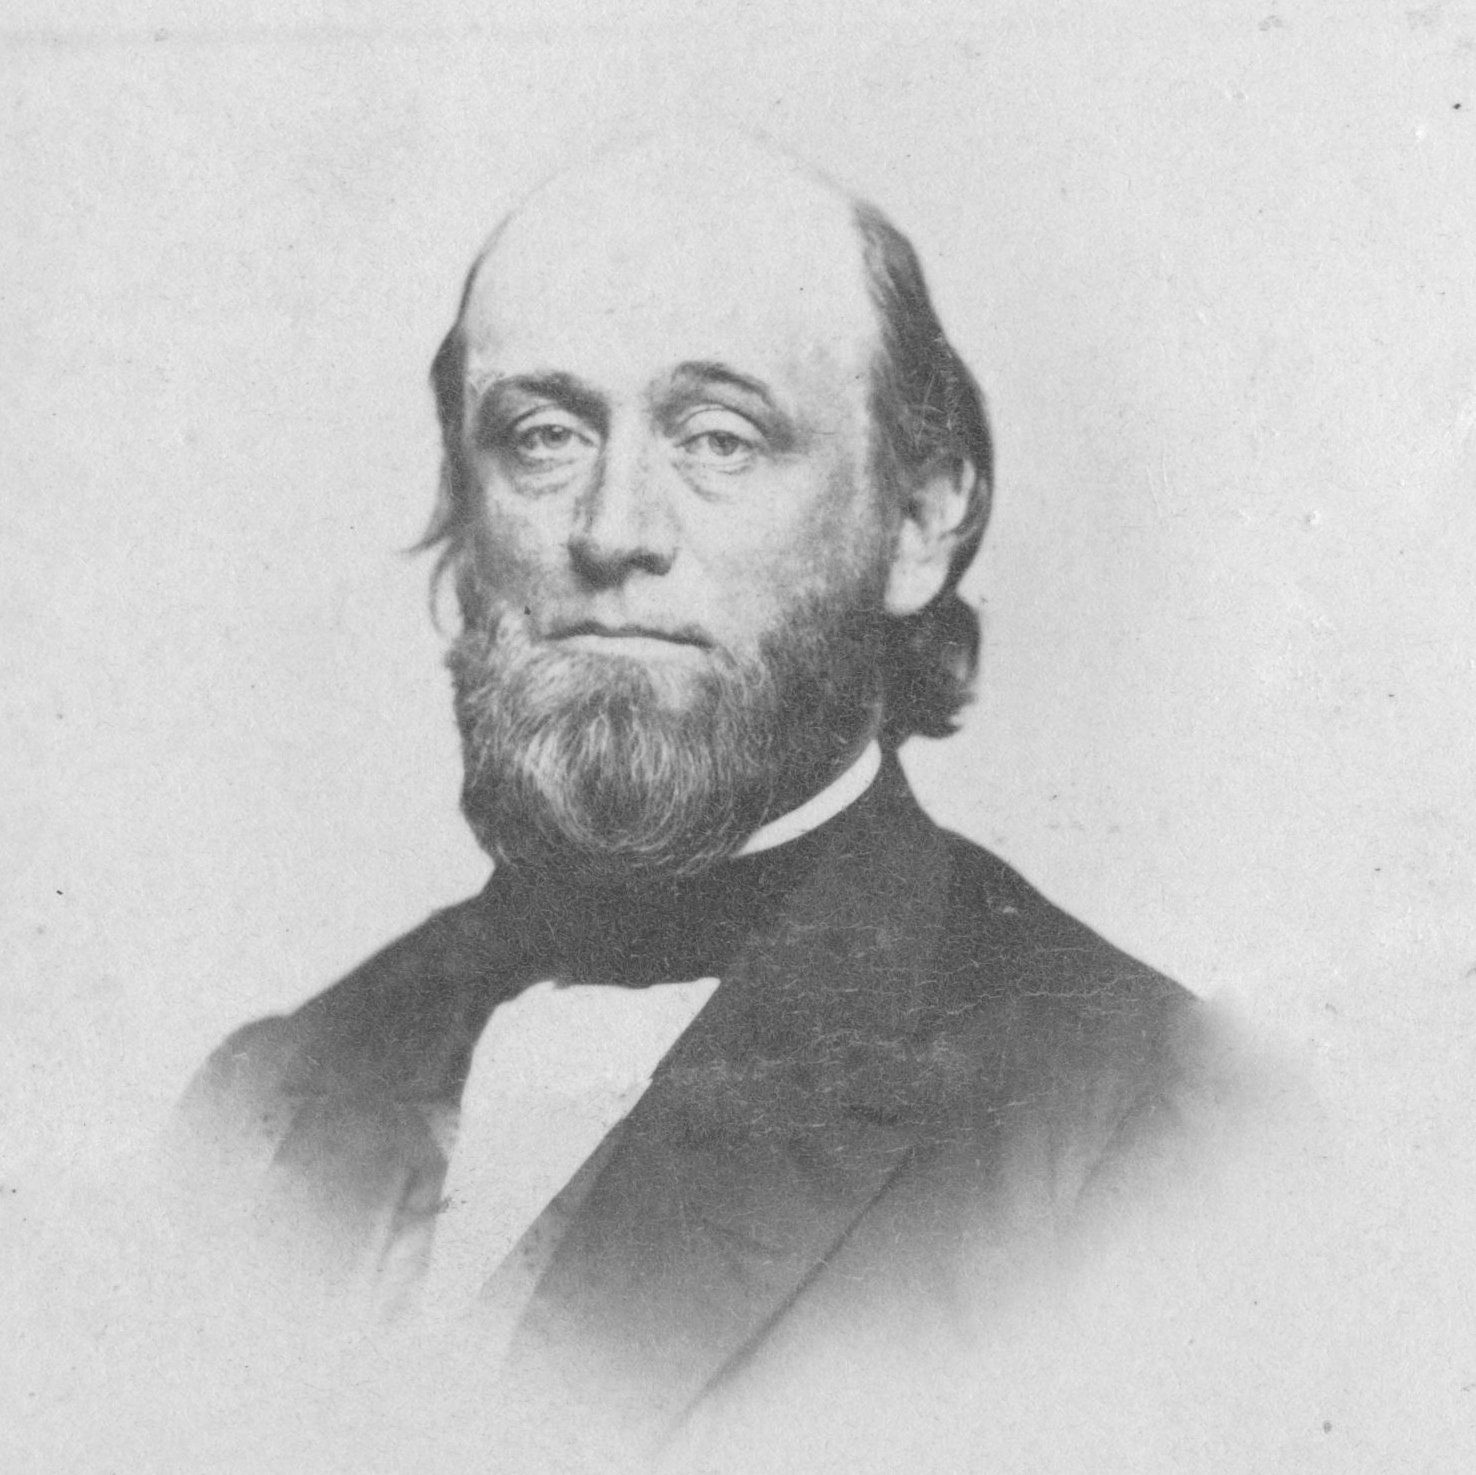 John B. Walker in the 1850s